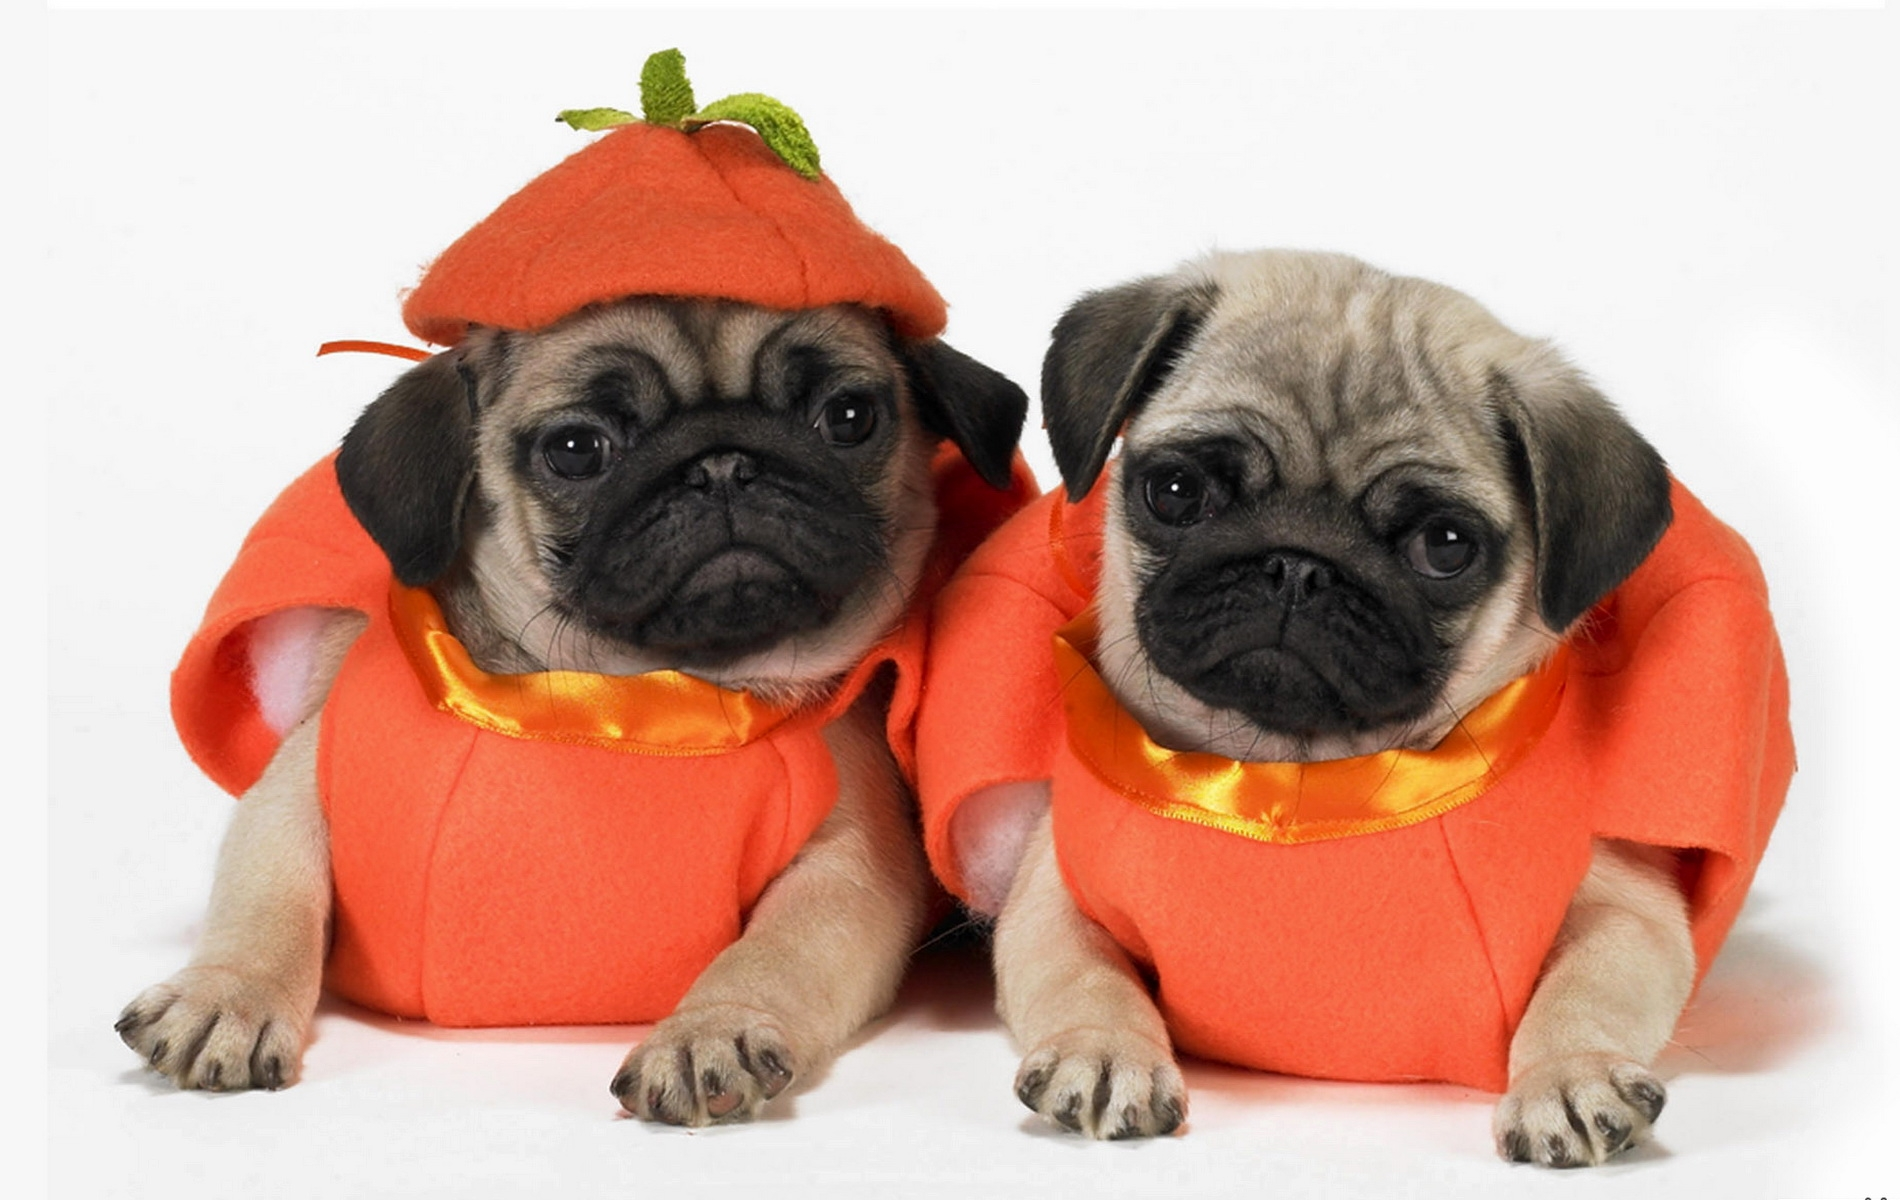 128197 download wallpaper Animals, Dogs, Puppies, Costumes, Pugs screensavers and pictures for free